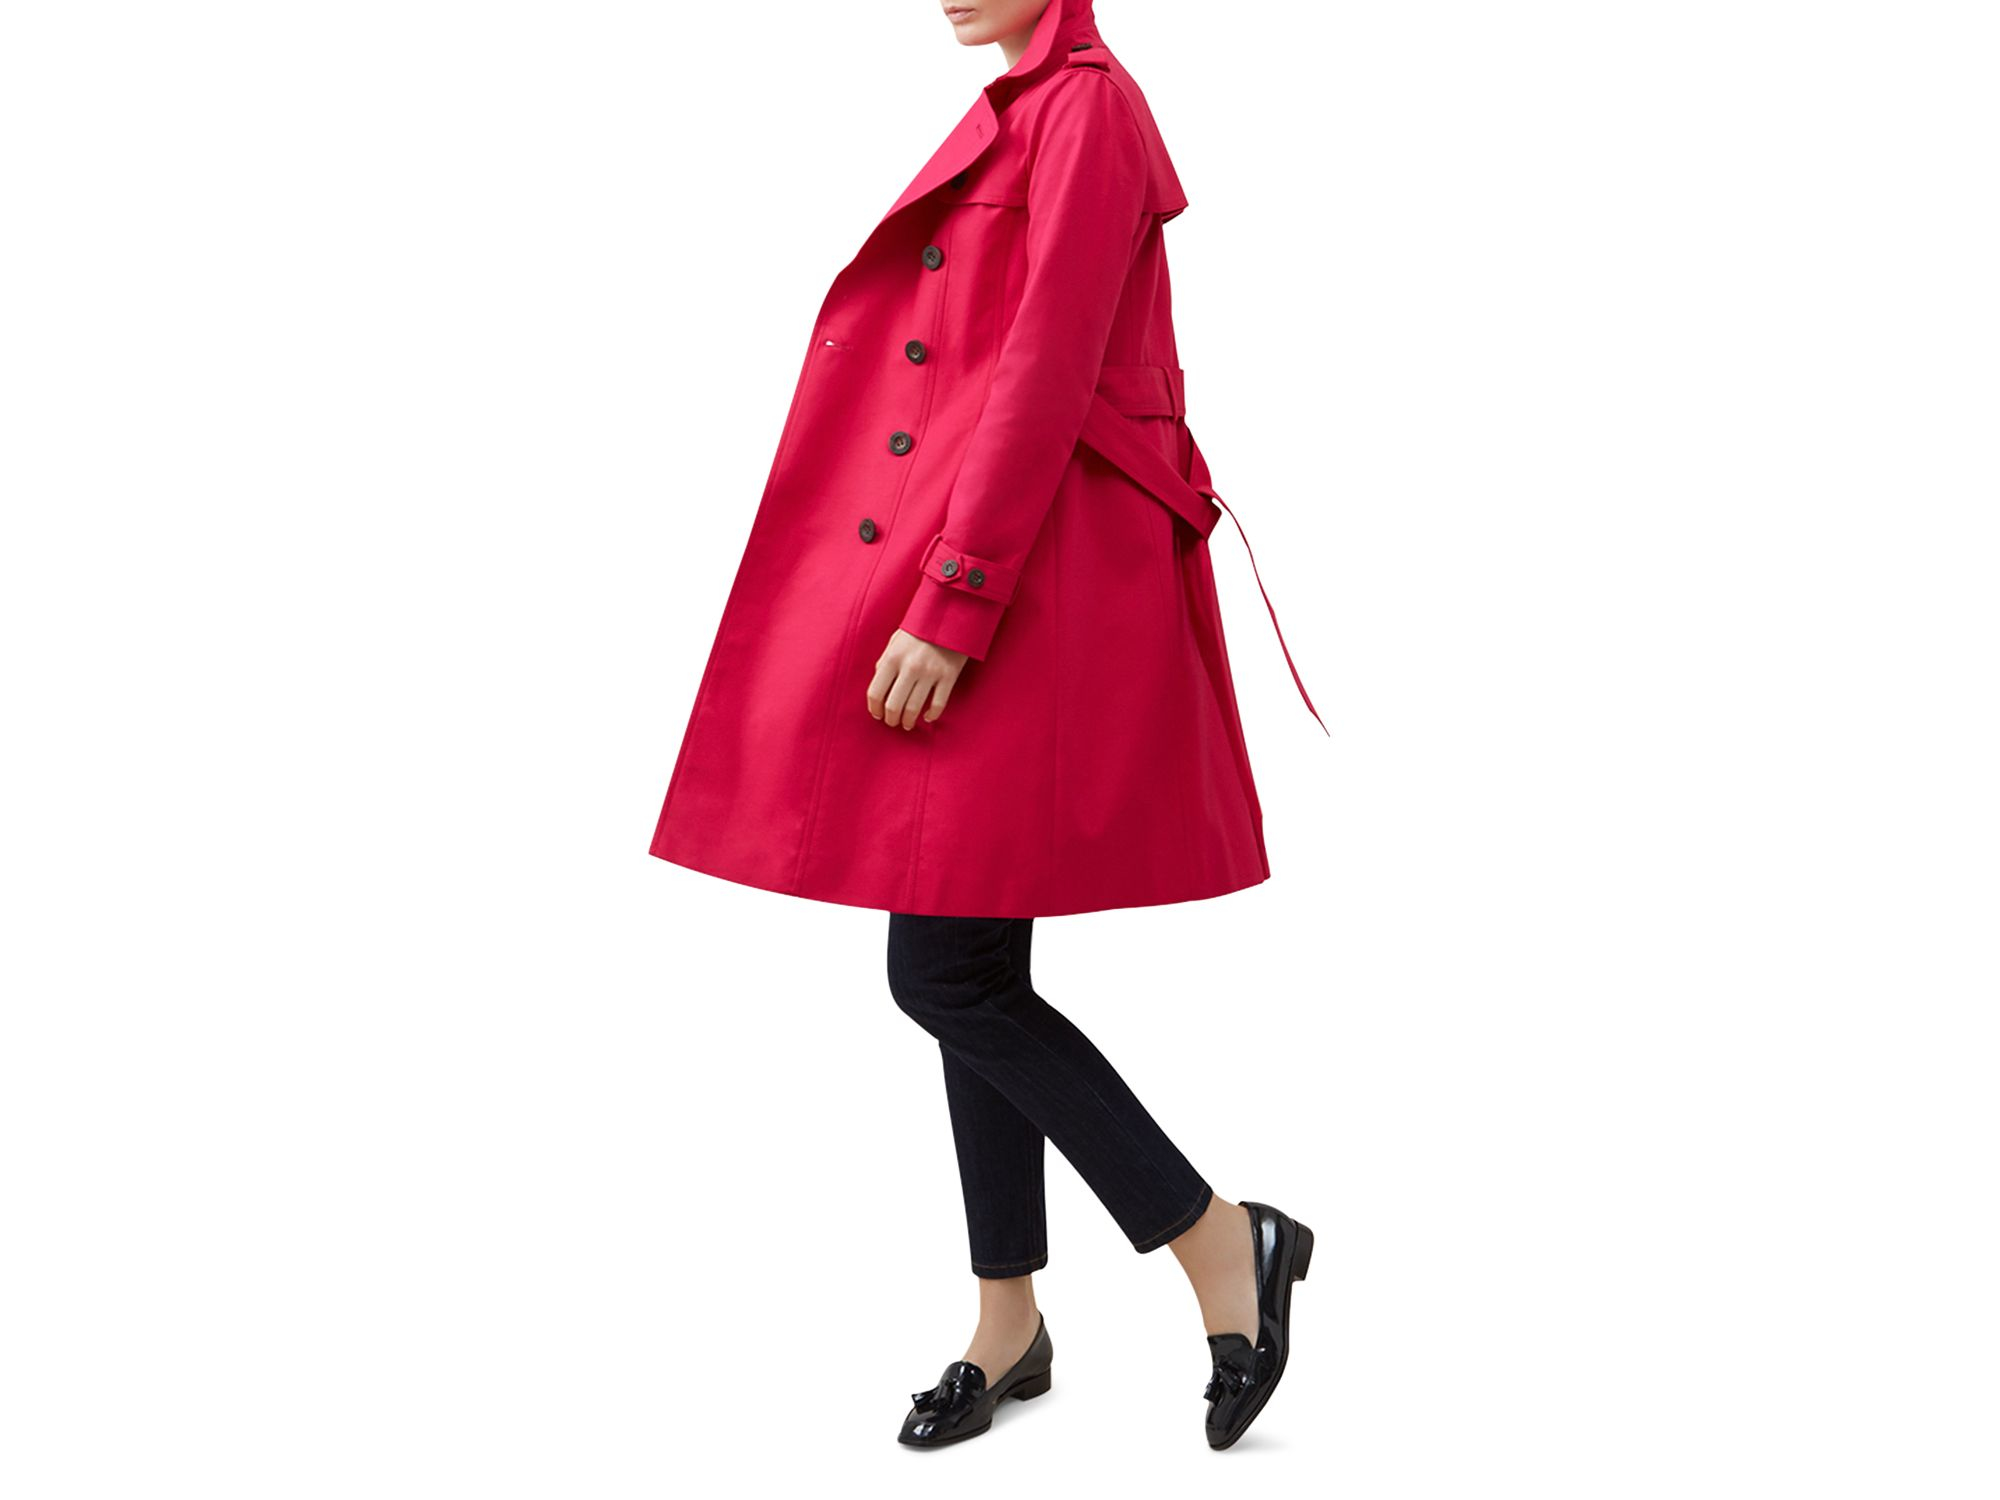 Hobbs Saskia Trench Coat - 100% Bloomingdale's Exclusive in Red | Lyst